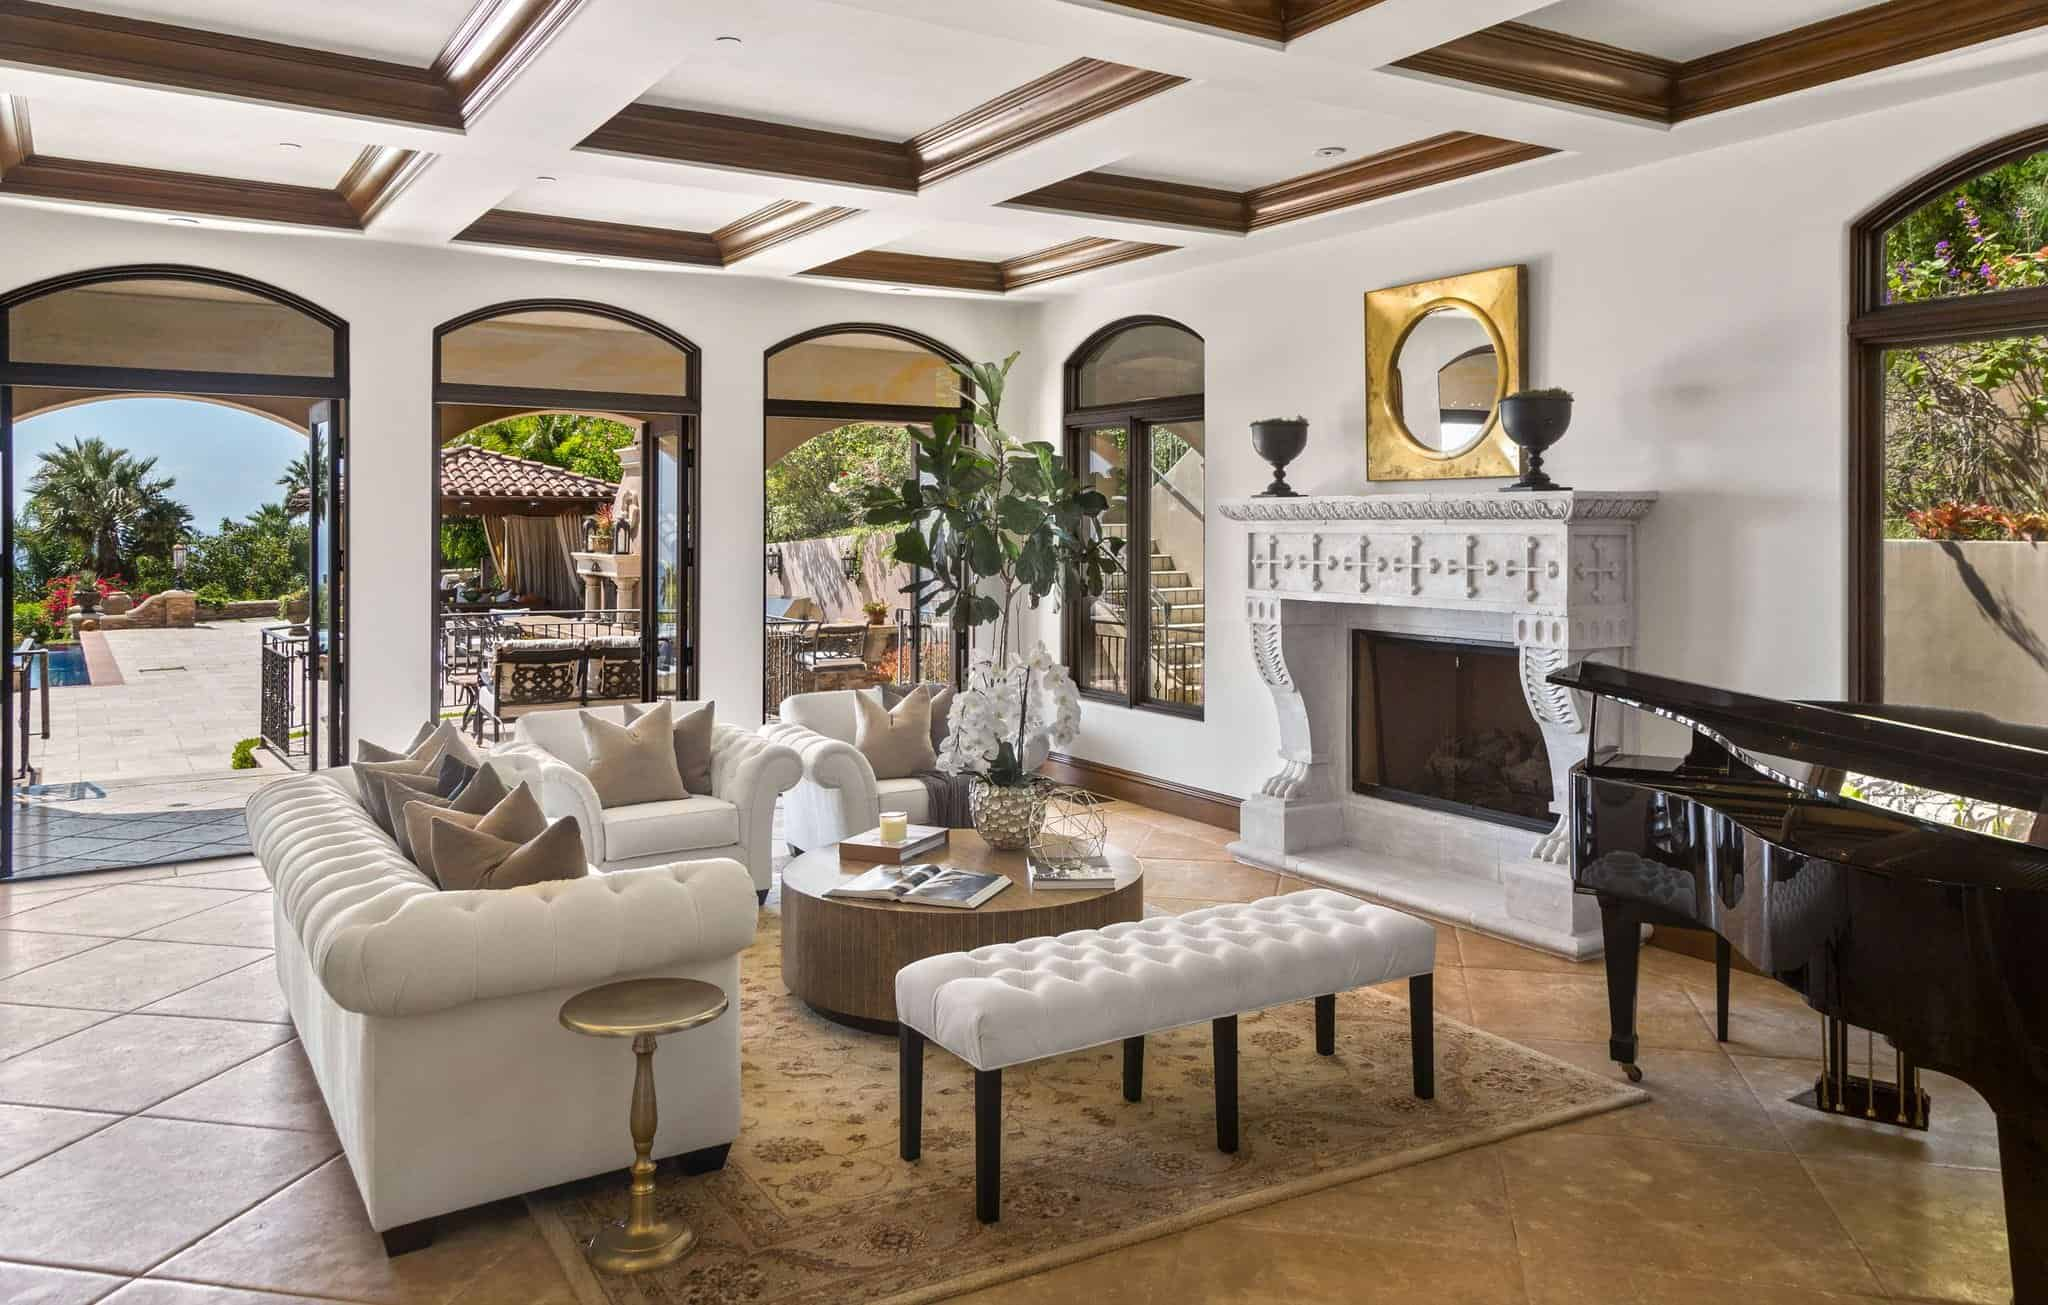 This living room offers white elegant seats in front of the classy fireplace. The ceiling together with the windows looks absolutely gorgeous.